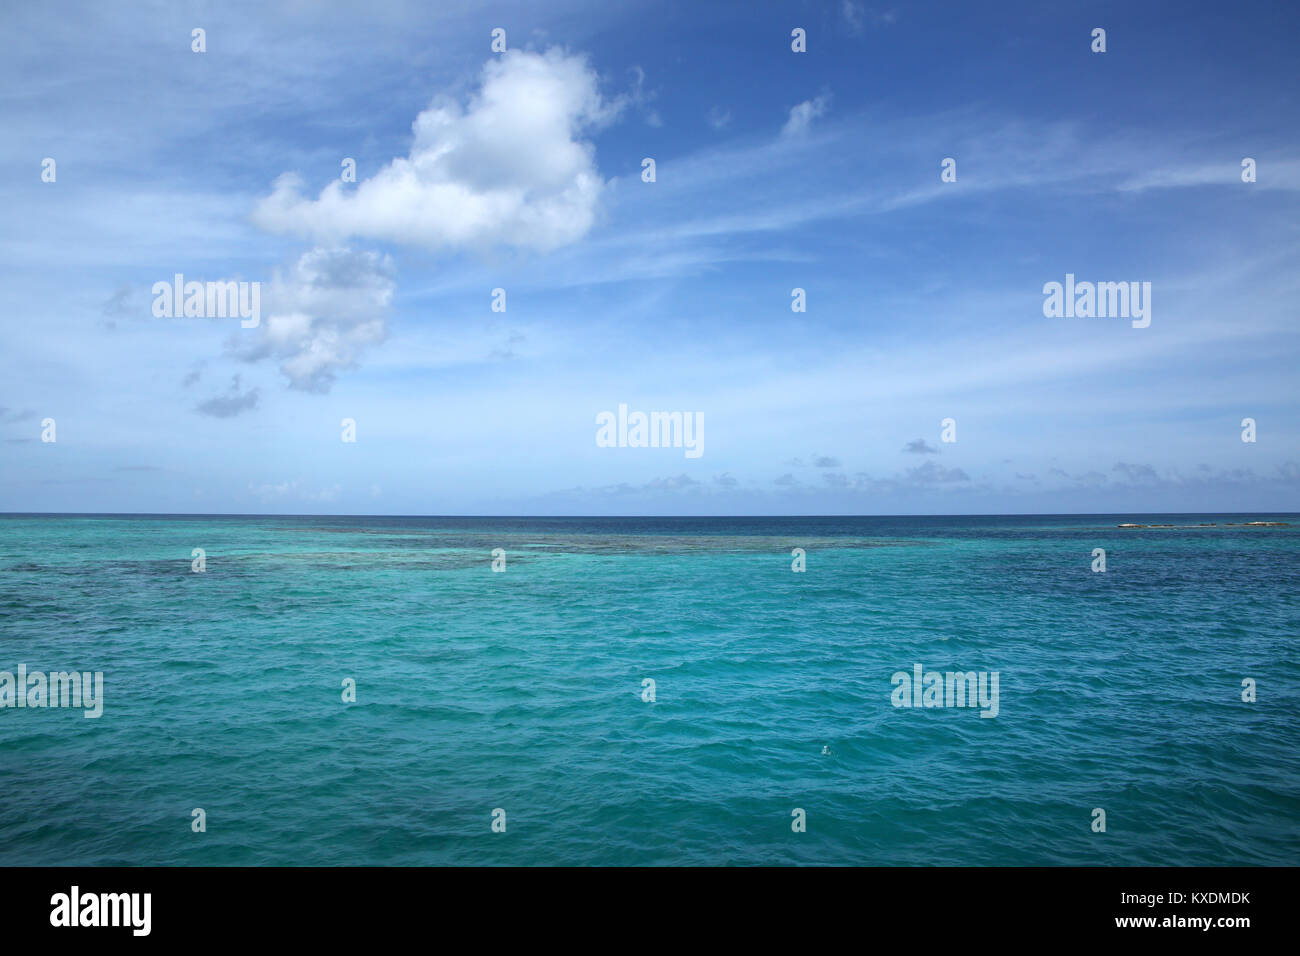 Beautiful tropical ocean view with turquiose water & blue sky, Antigua, Caribbean. With copy space. - Stock Image